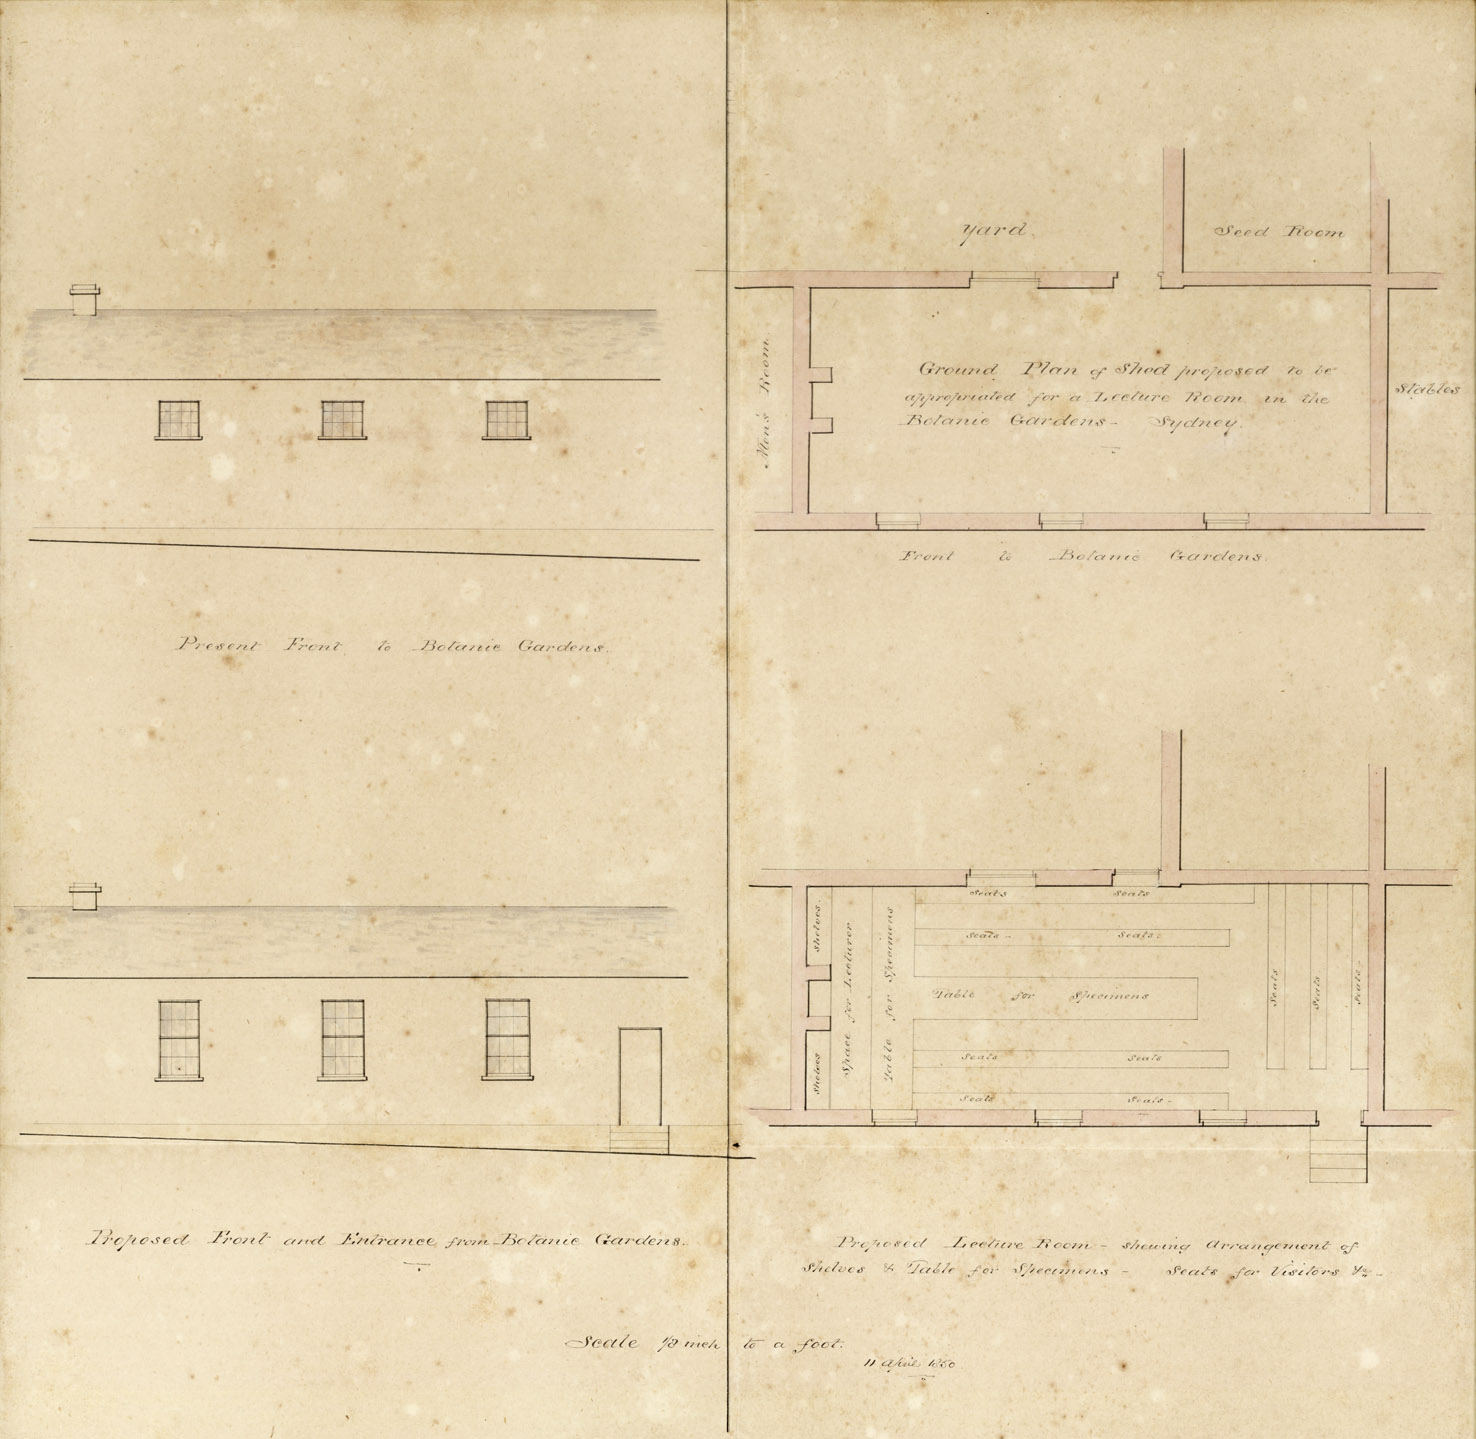 Fig. 7: Lecture Hall design, 11/4/1850. From NRS 12419, [2/640 B]